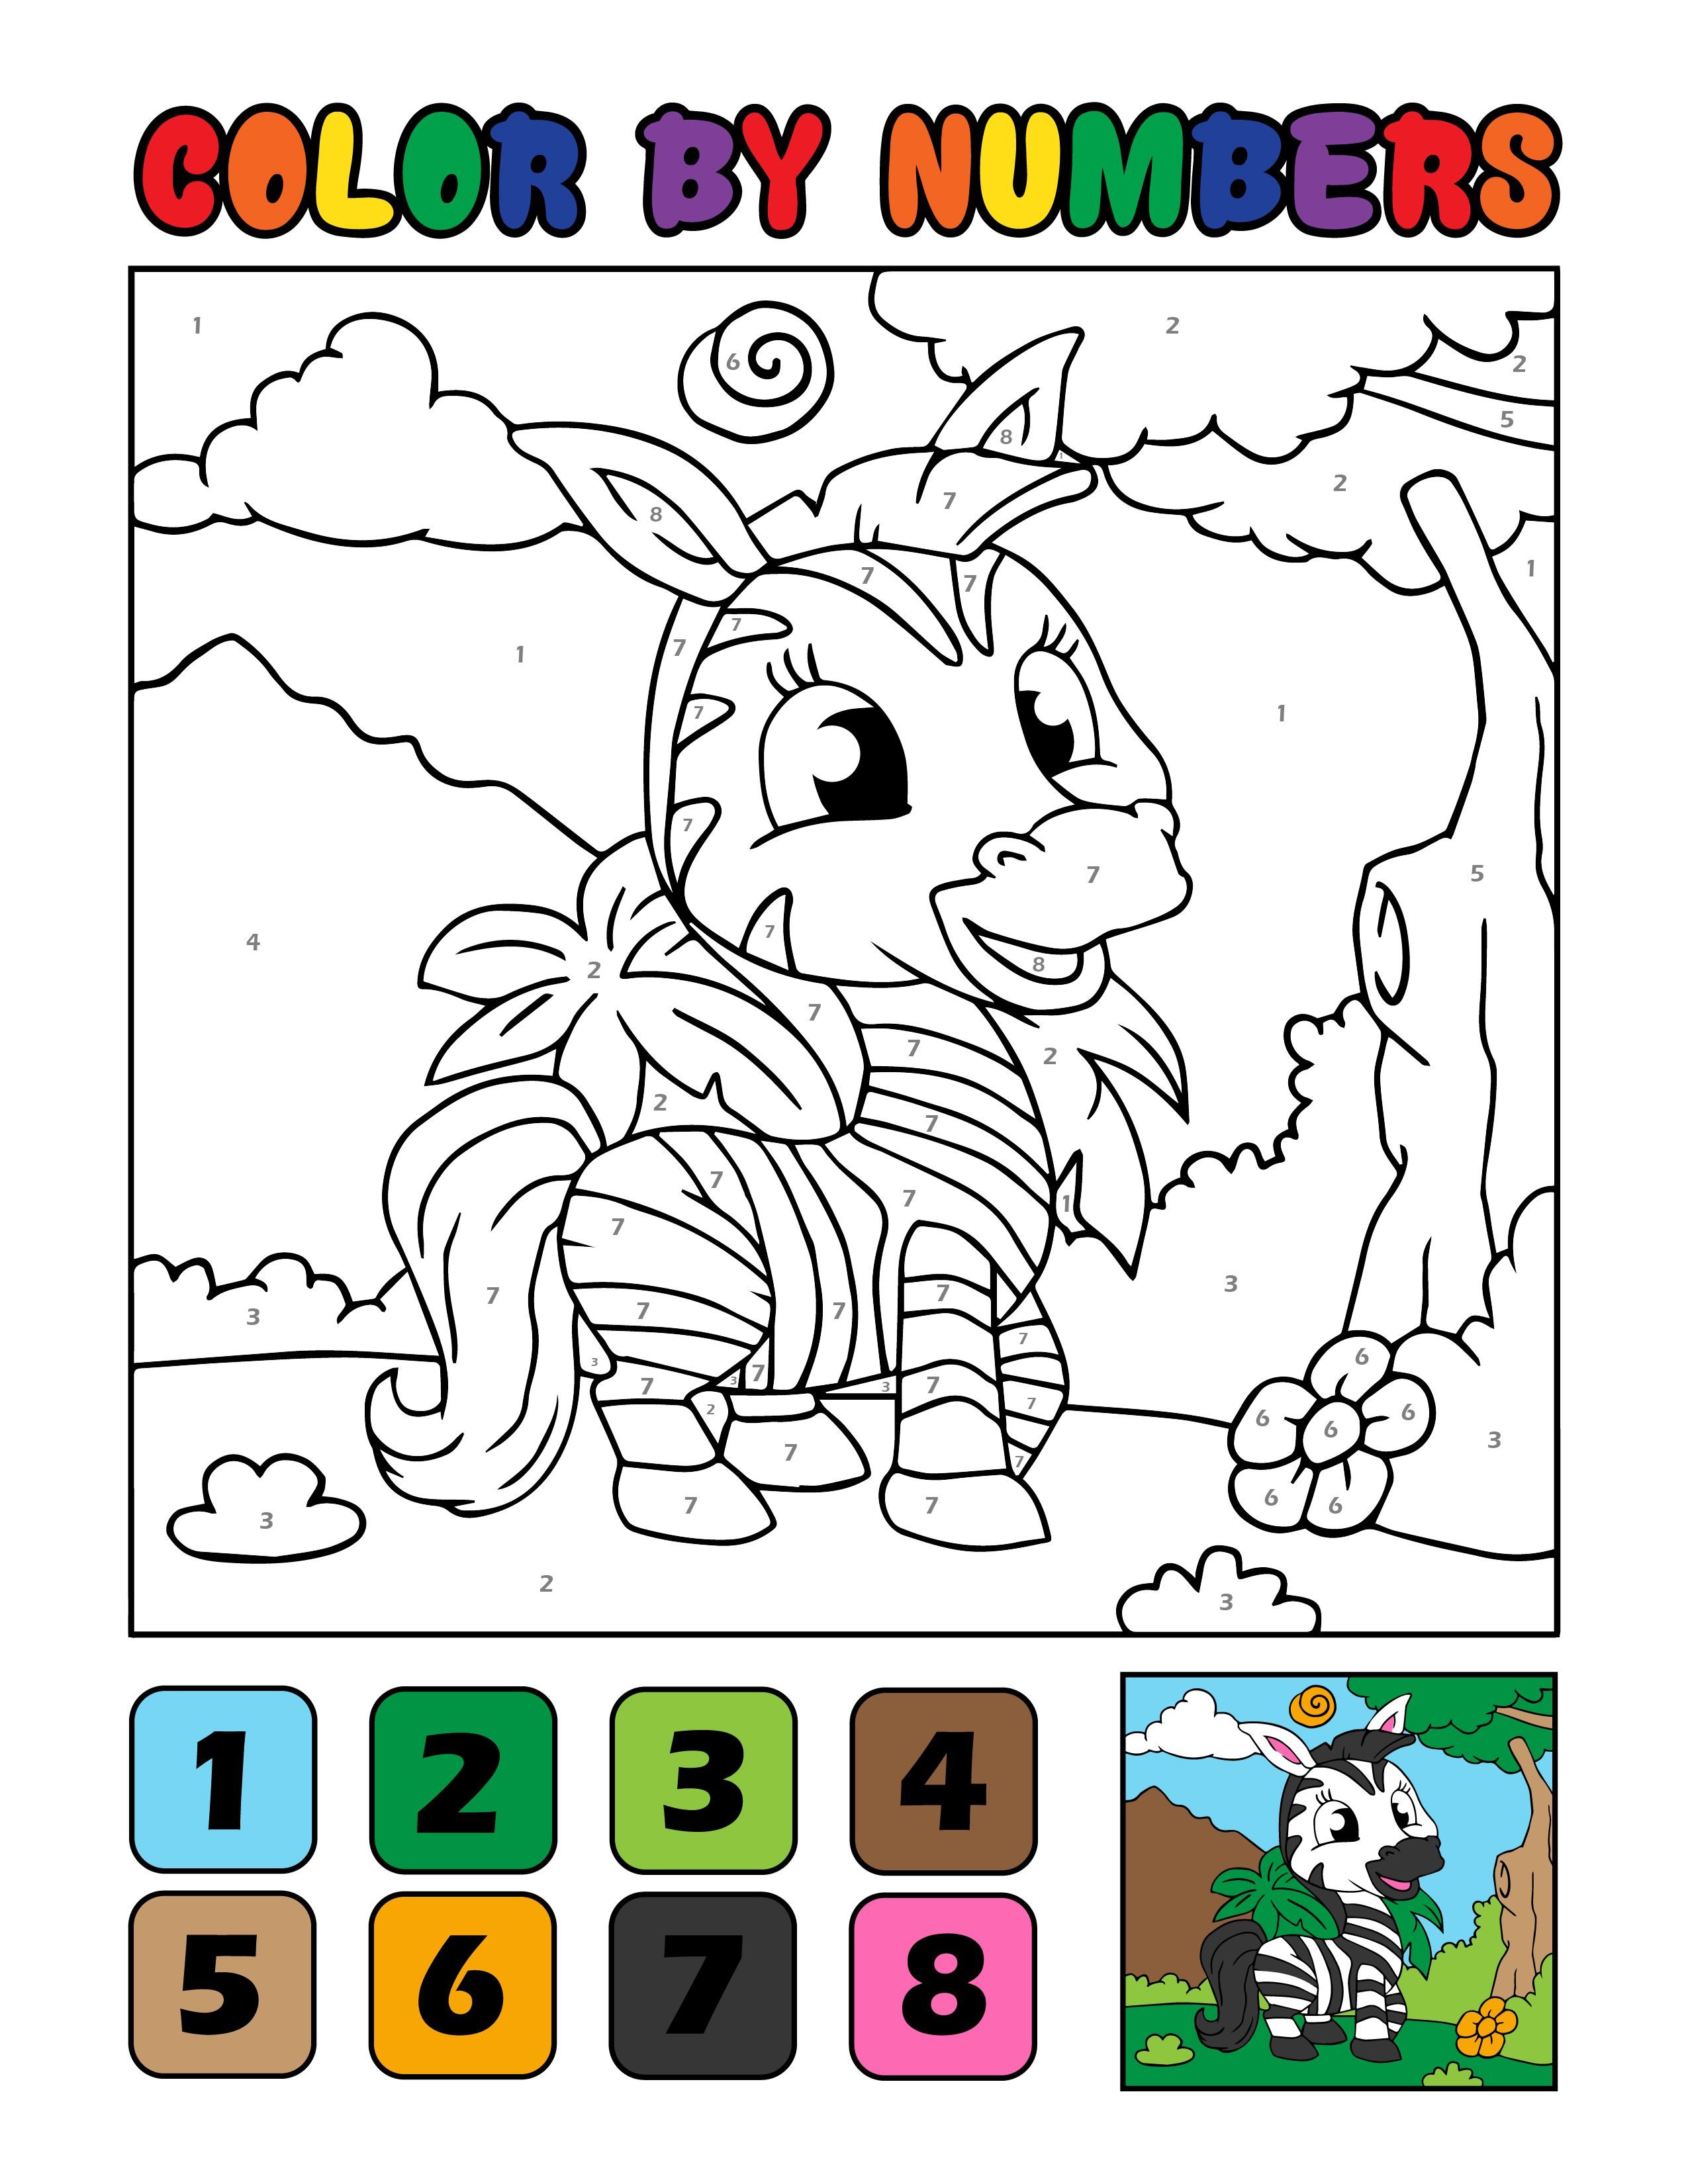 Color By Numbers Zebra Cute Coloring Pages Free Coloring Pages Animal Coloring Pages